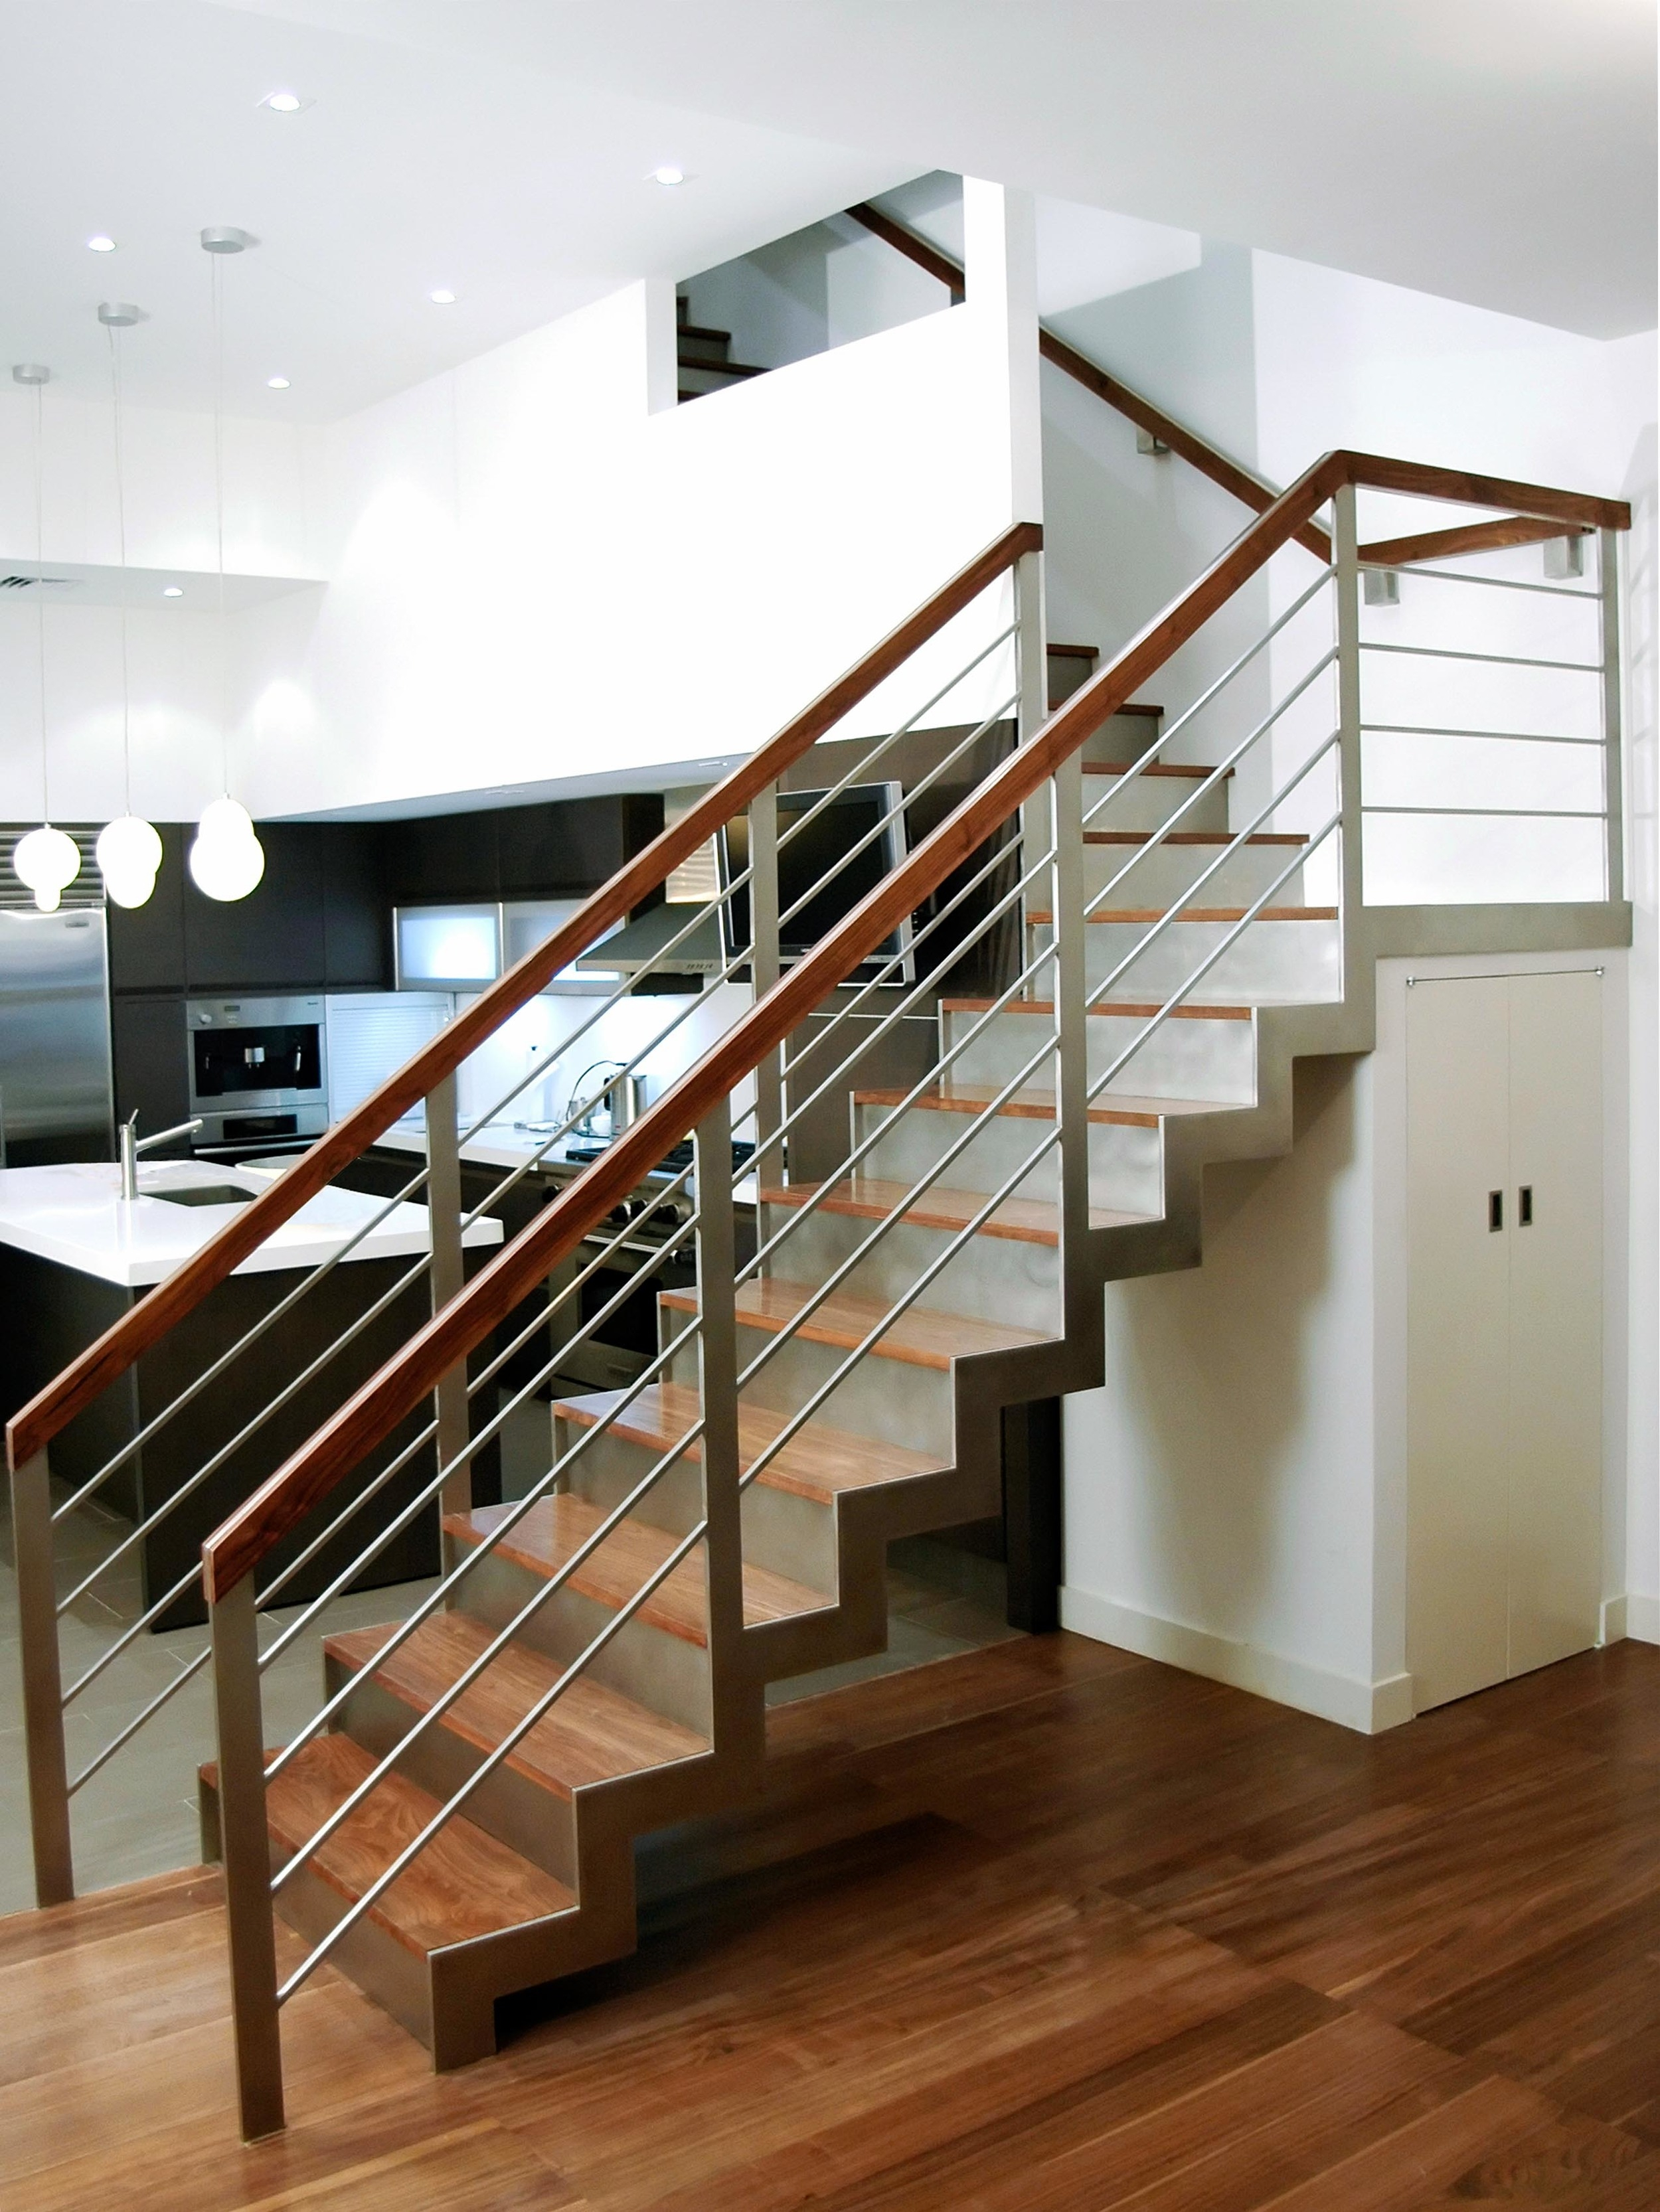 Walnut And Stainless Steel Staircase — Custom Metal Fabrication In | Metal Staircases For Homes | Beam | Stainless Steel | Support | Statement | Metallic